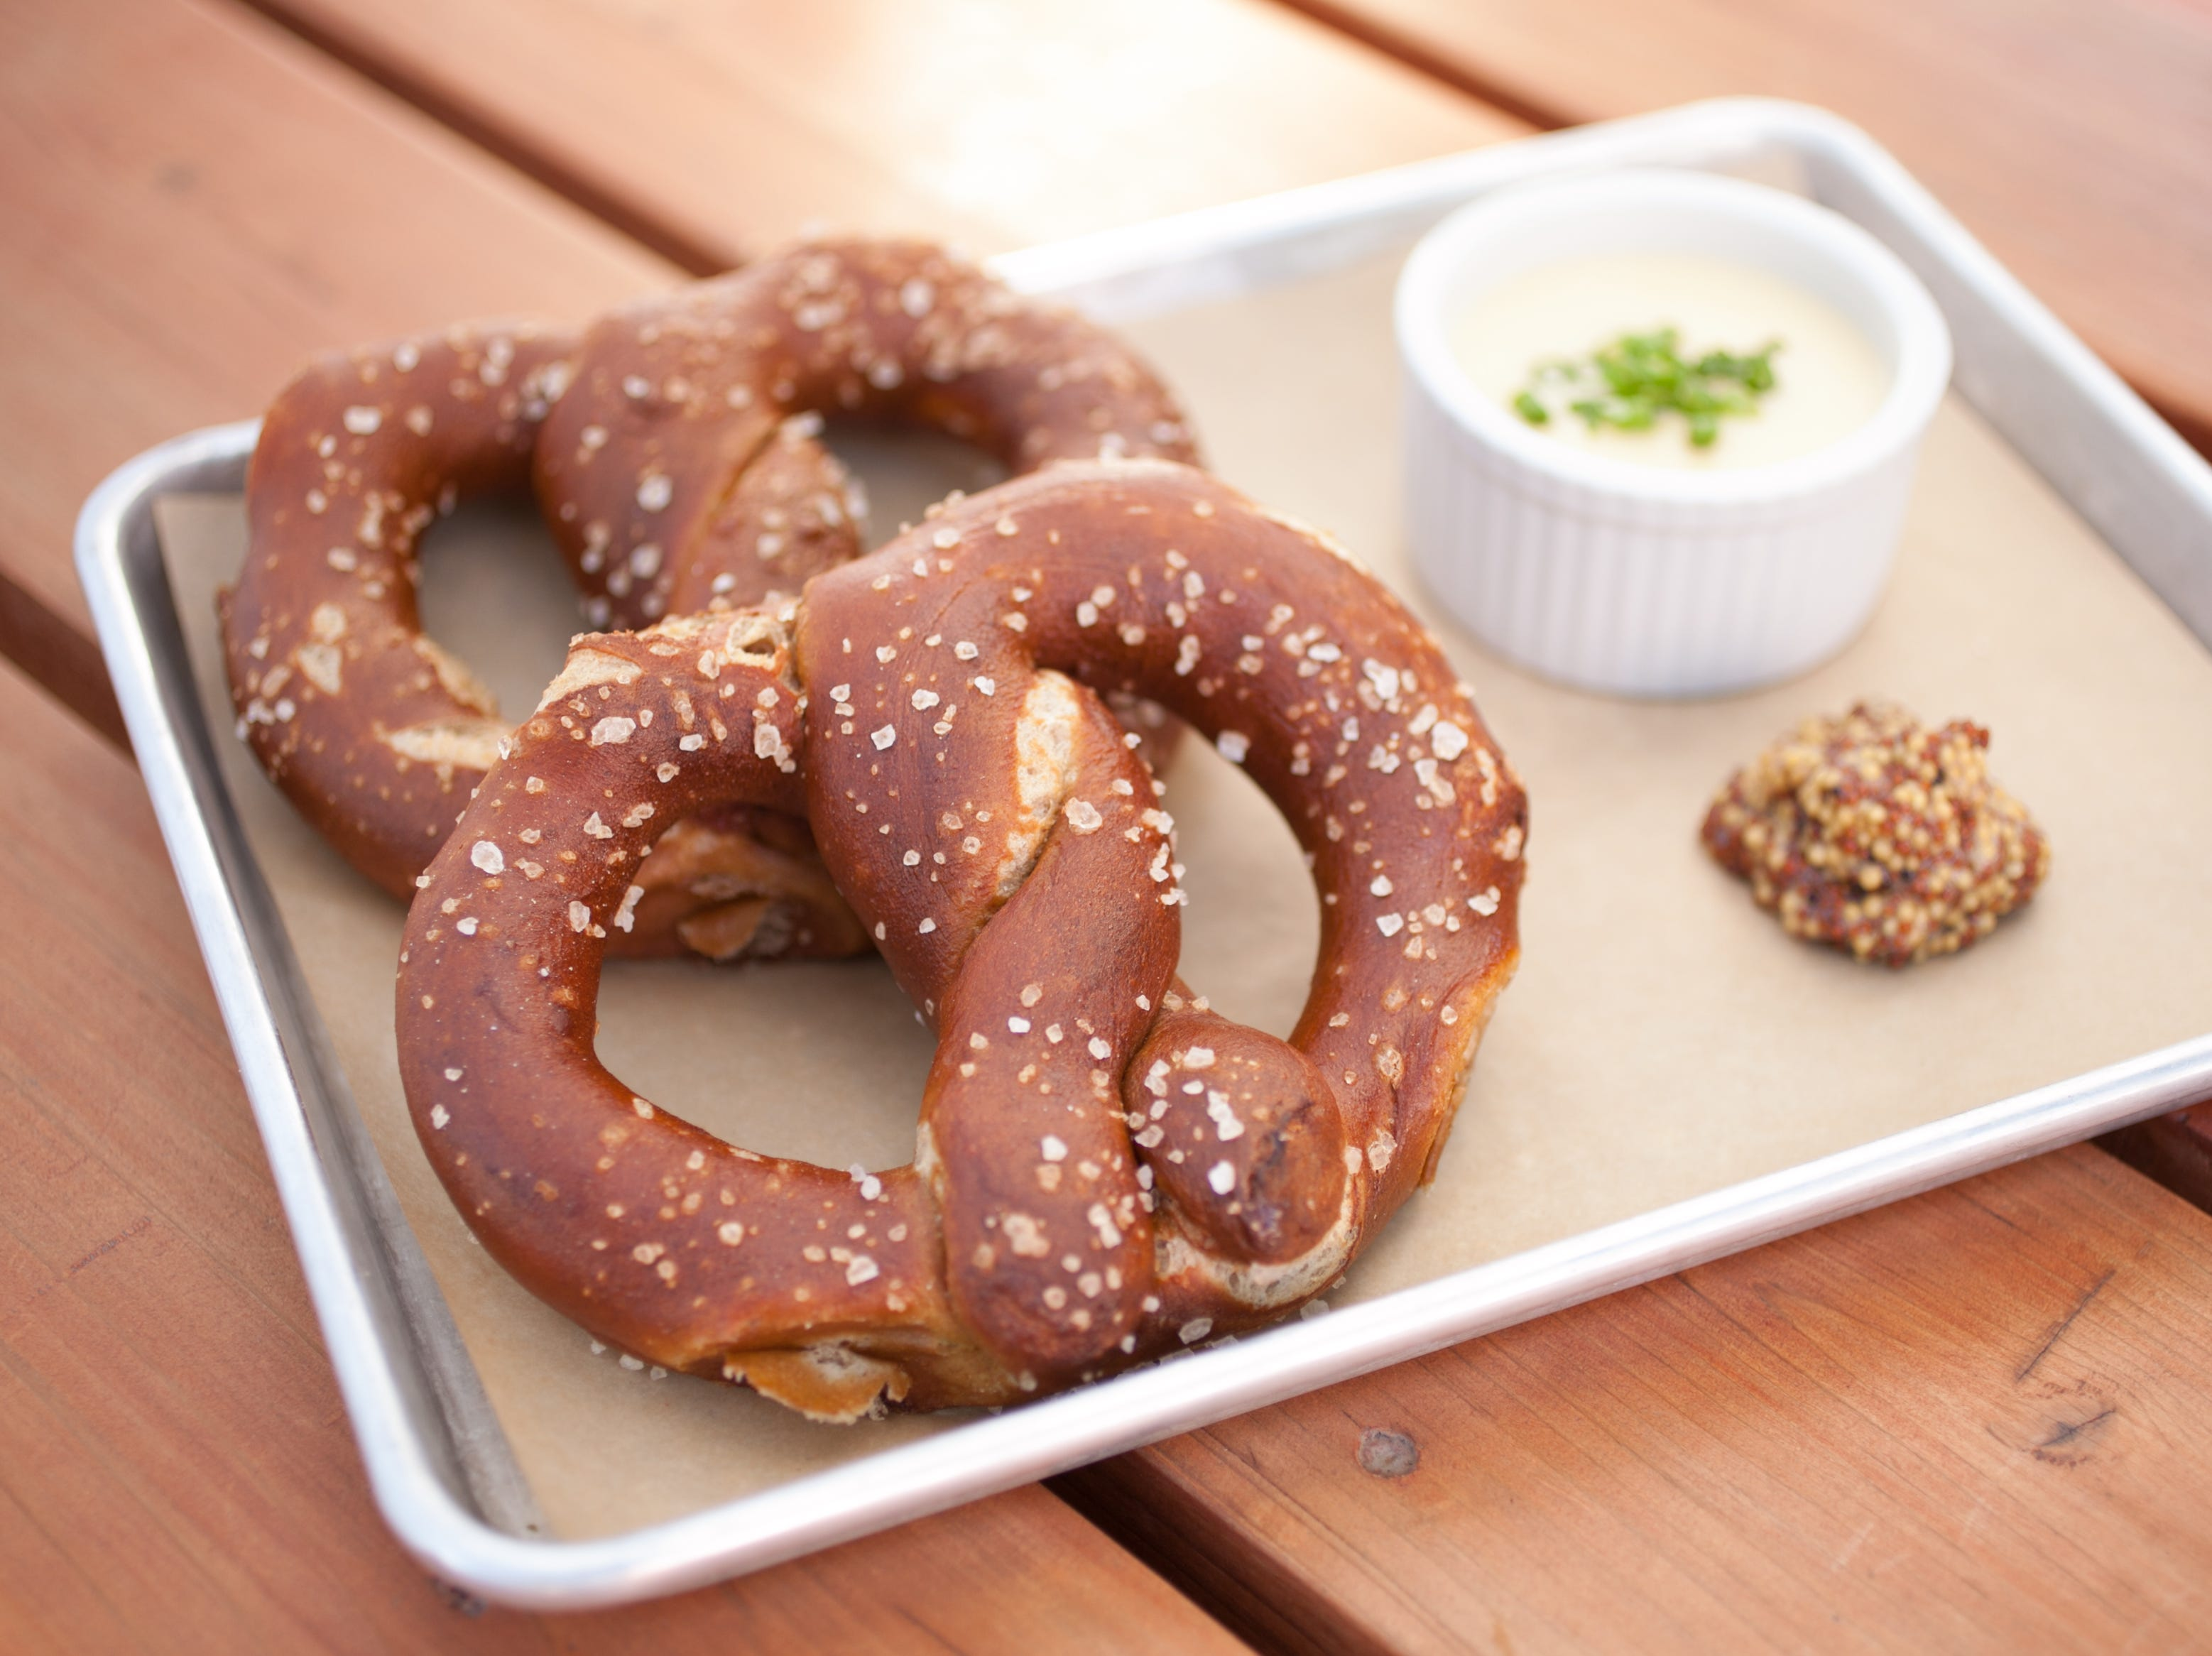 Brat Haus | Nov. 12, veterans get a free Haus Brat and 20 percent of all proceeds go to Honor Flight Arizona, supporting WWII and Korean War veterans. |Details: 3622 N. Scottsdale Road, Scottsdale. 480-947-4006, brathausaz.com.